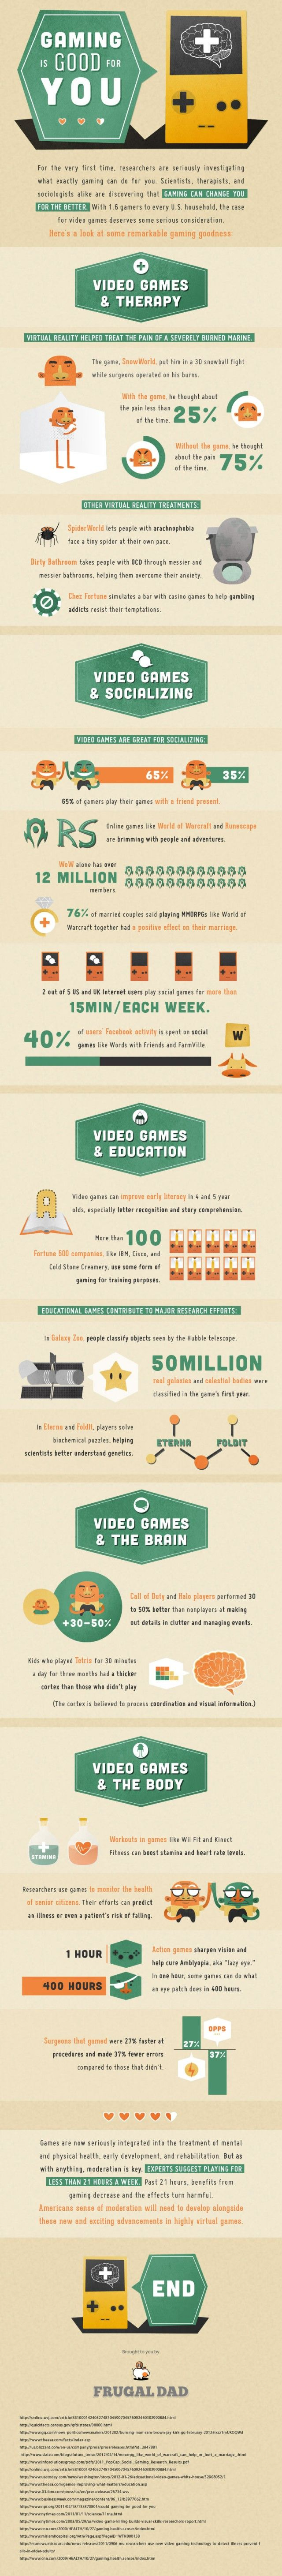 [INFOGRAPHIC]: Gamification is good for you